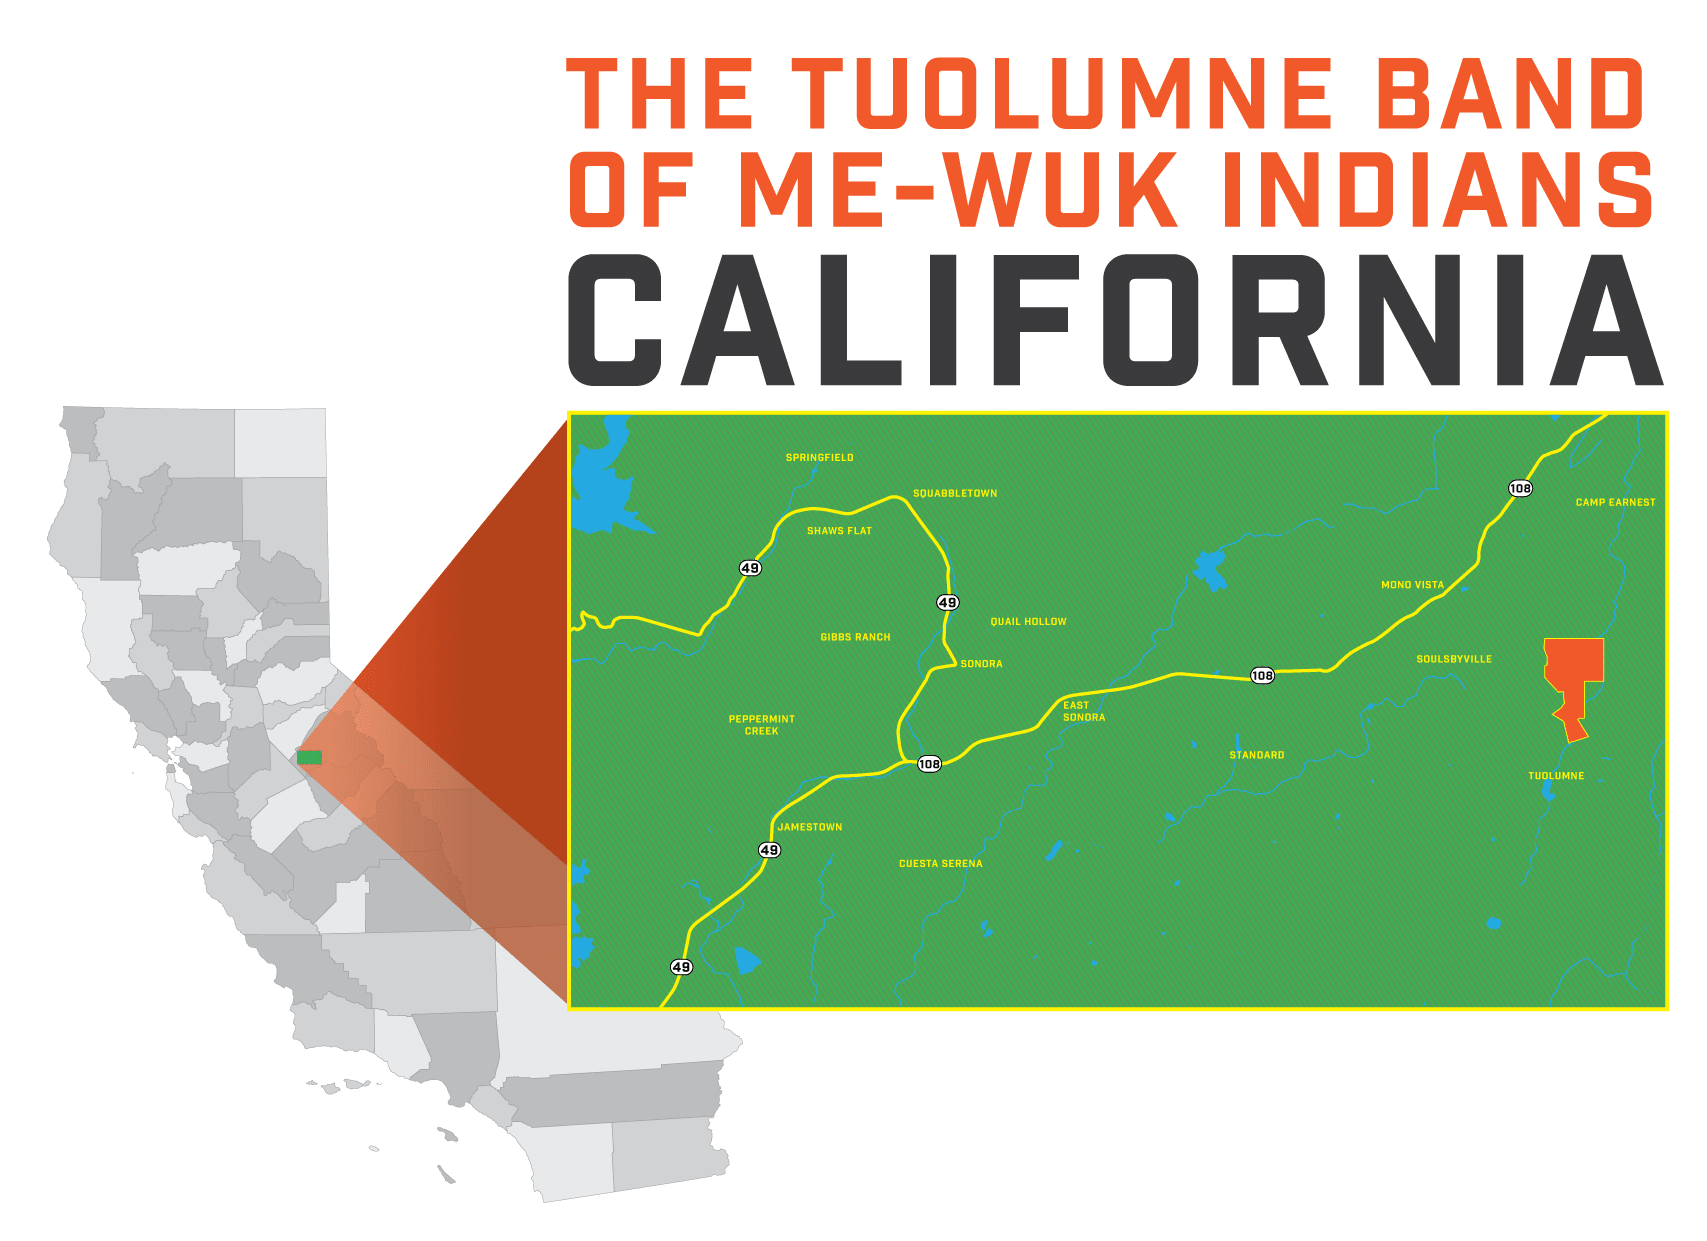 The Tuolumne Band of Me-Wuk Indians